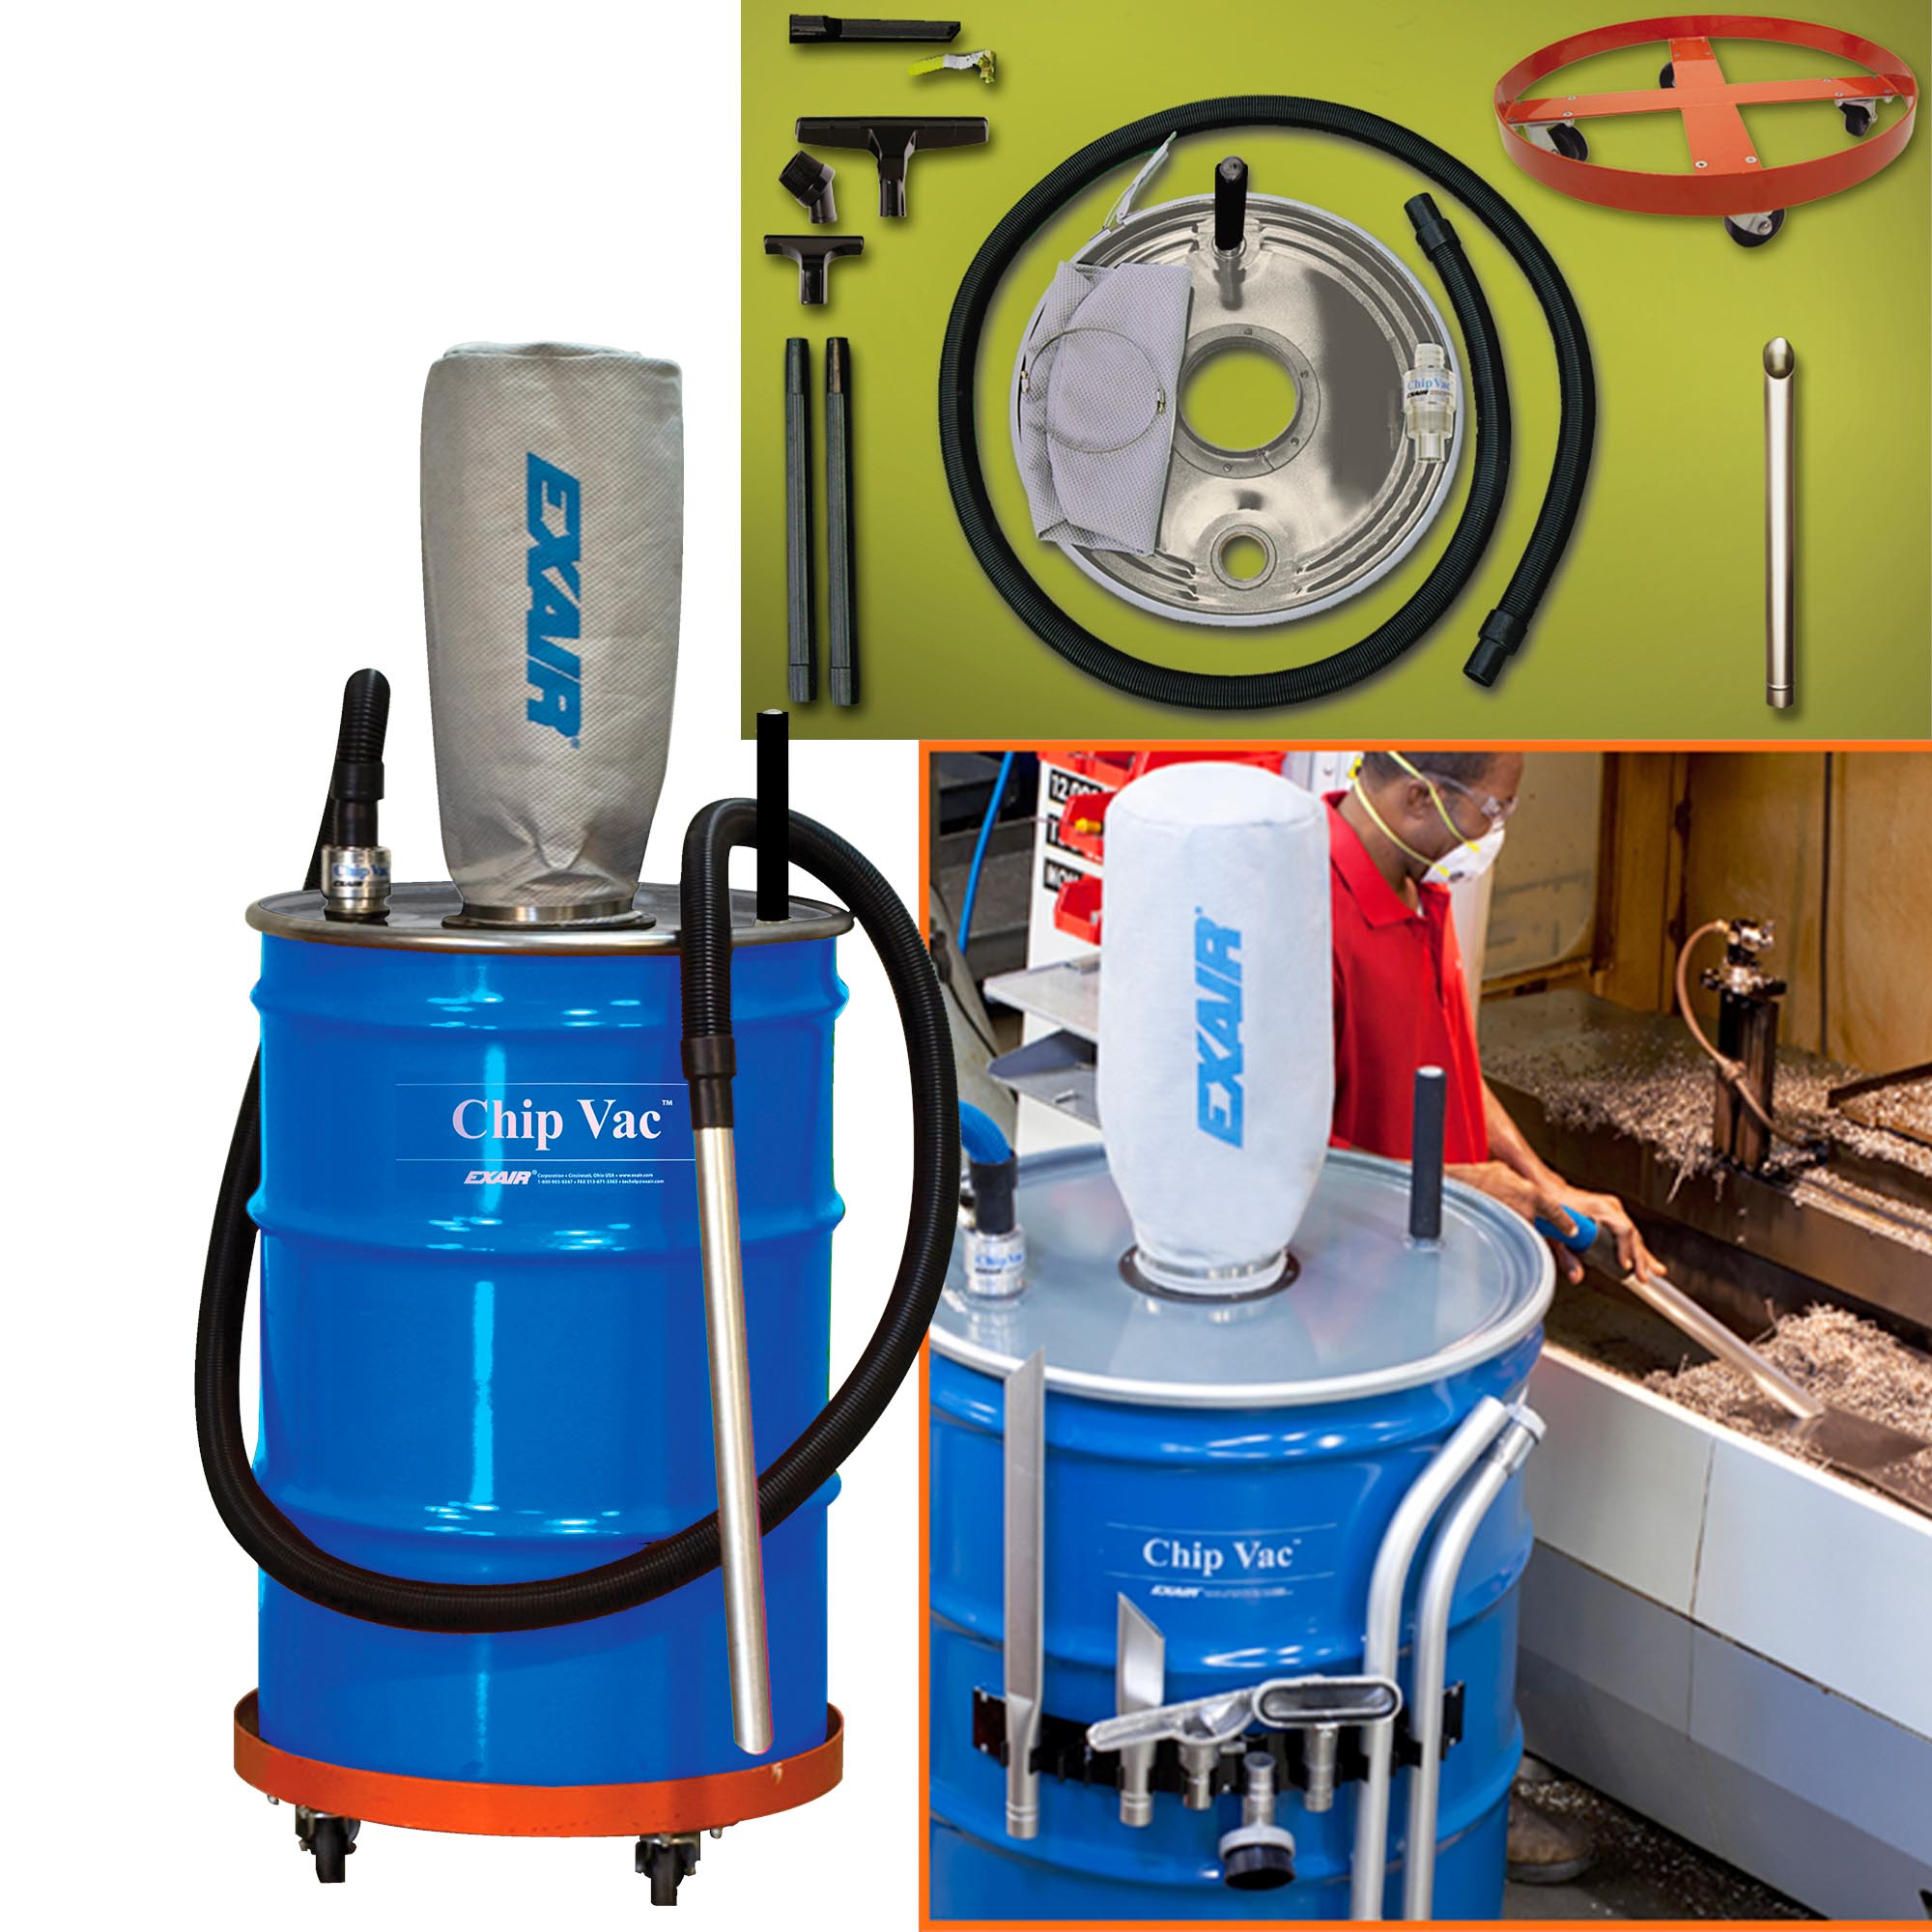 Chip Vac accessories including Chip wand, filter bag, vacuum hose, drum dolly and all tools.